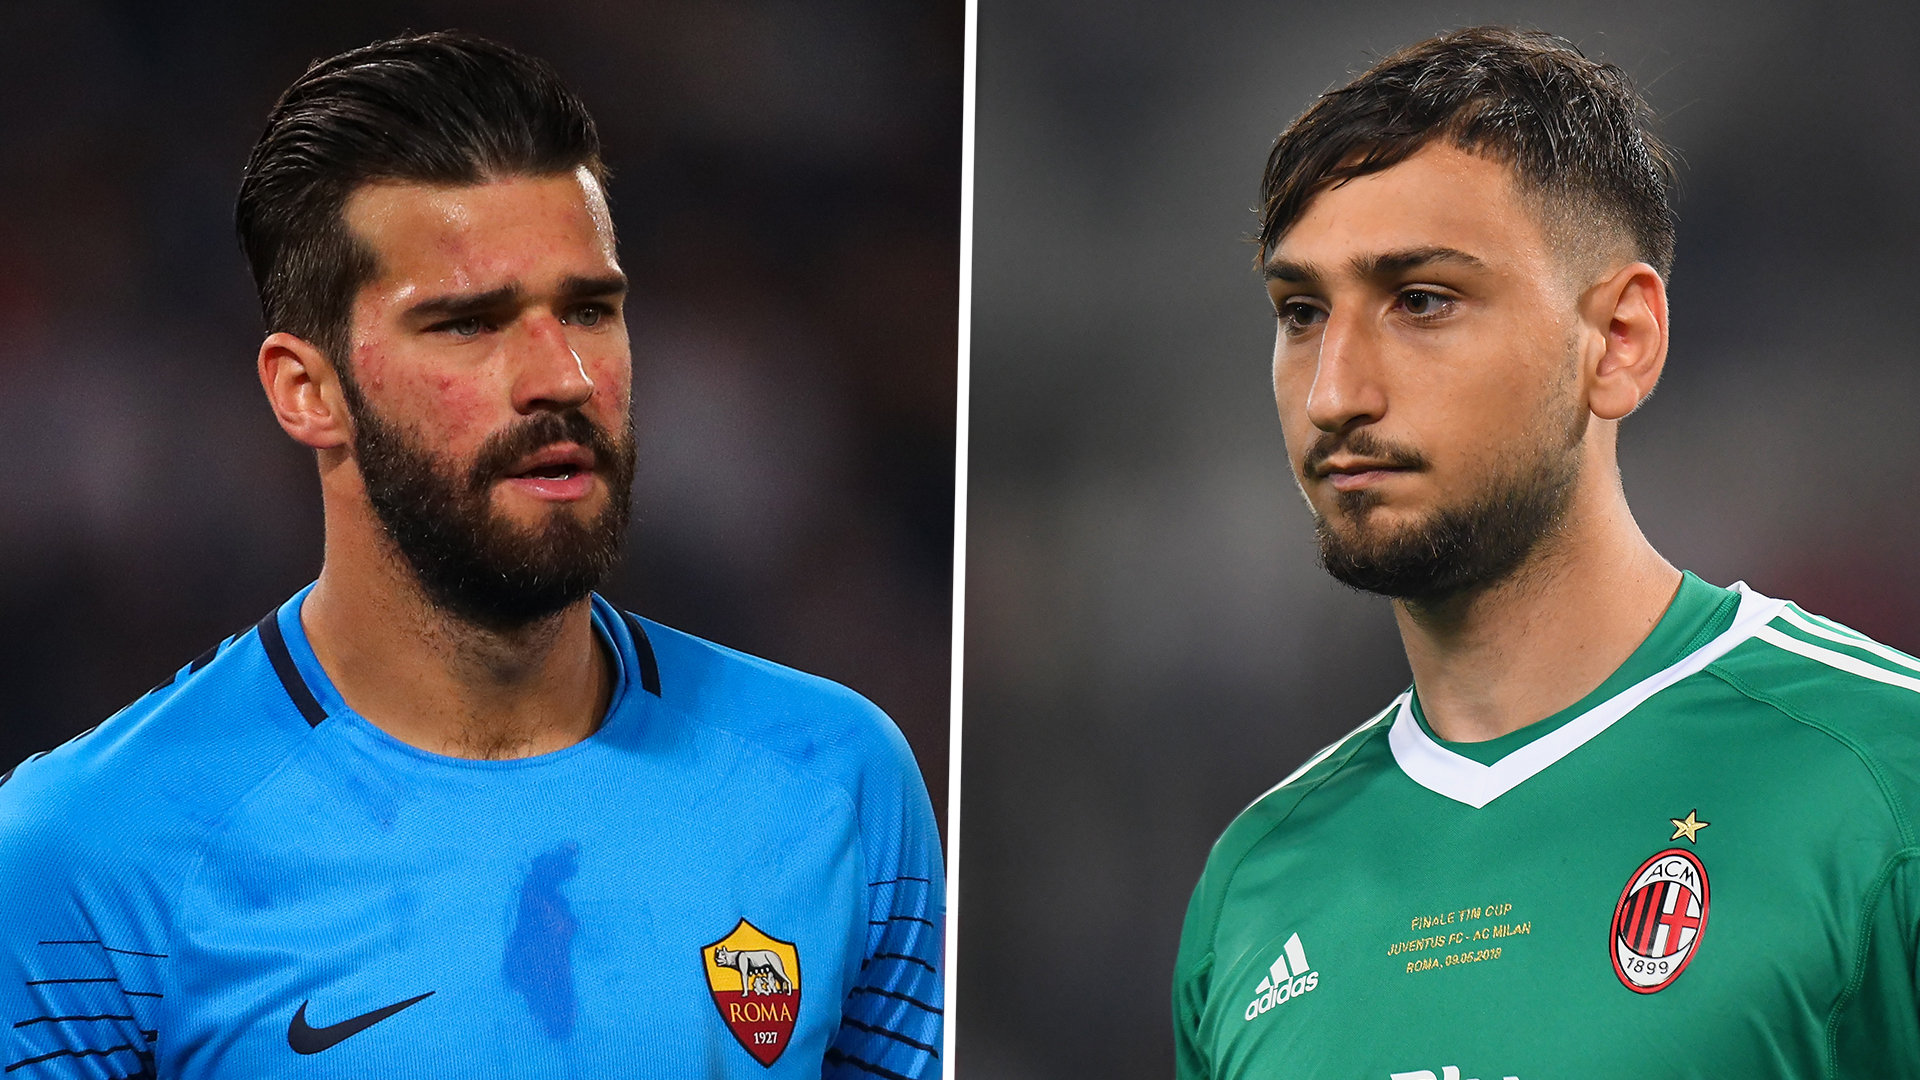 Liverpool make offer for Roma goalkeeper